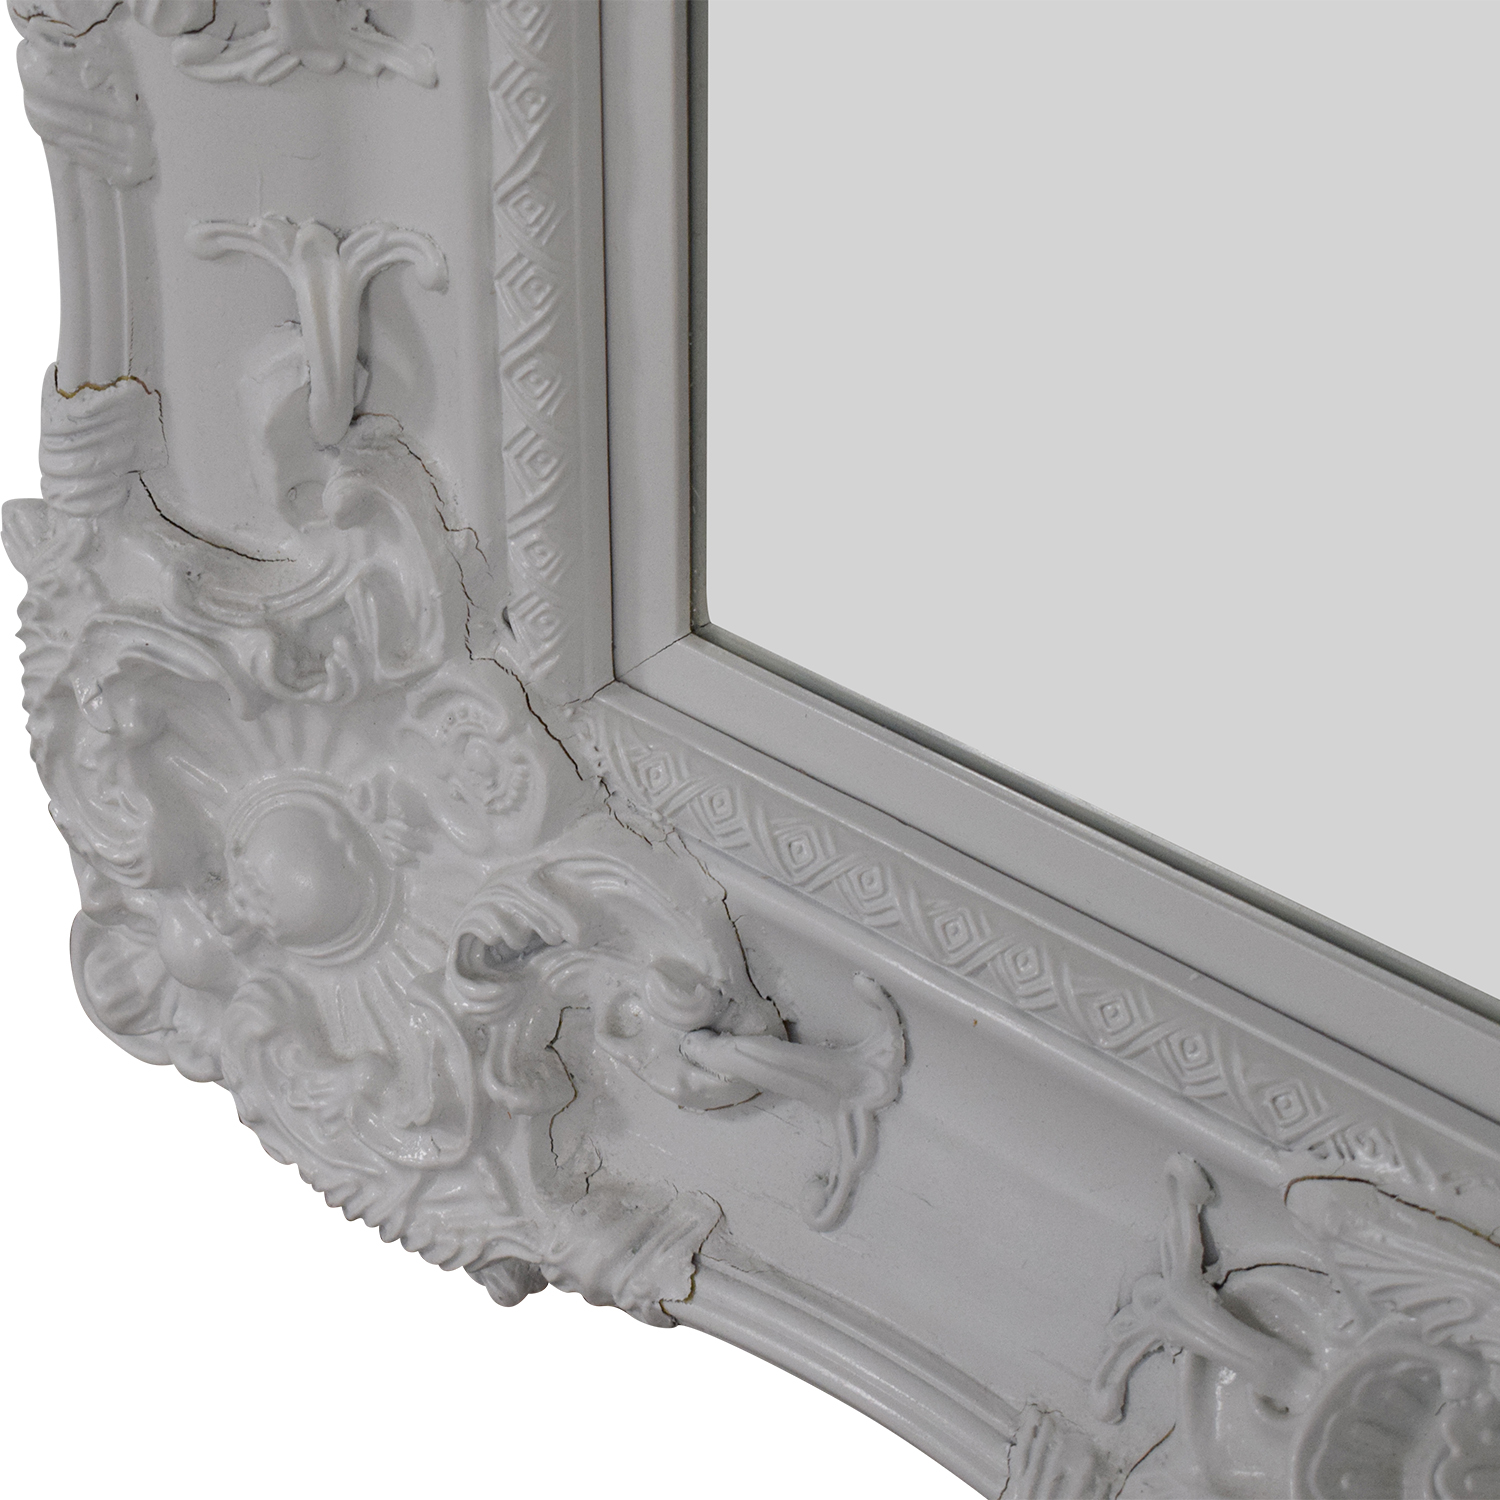 Ornate Rectangular Mirror for sale